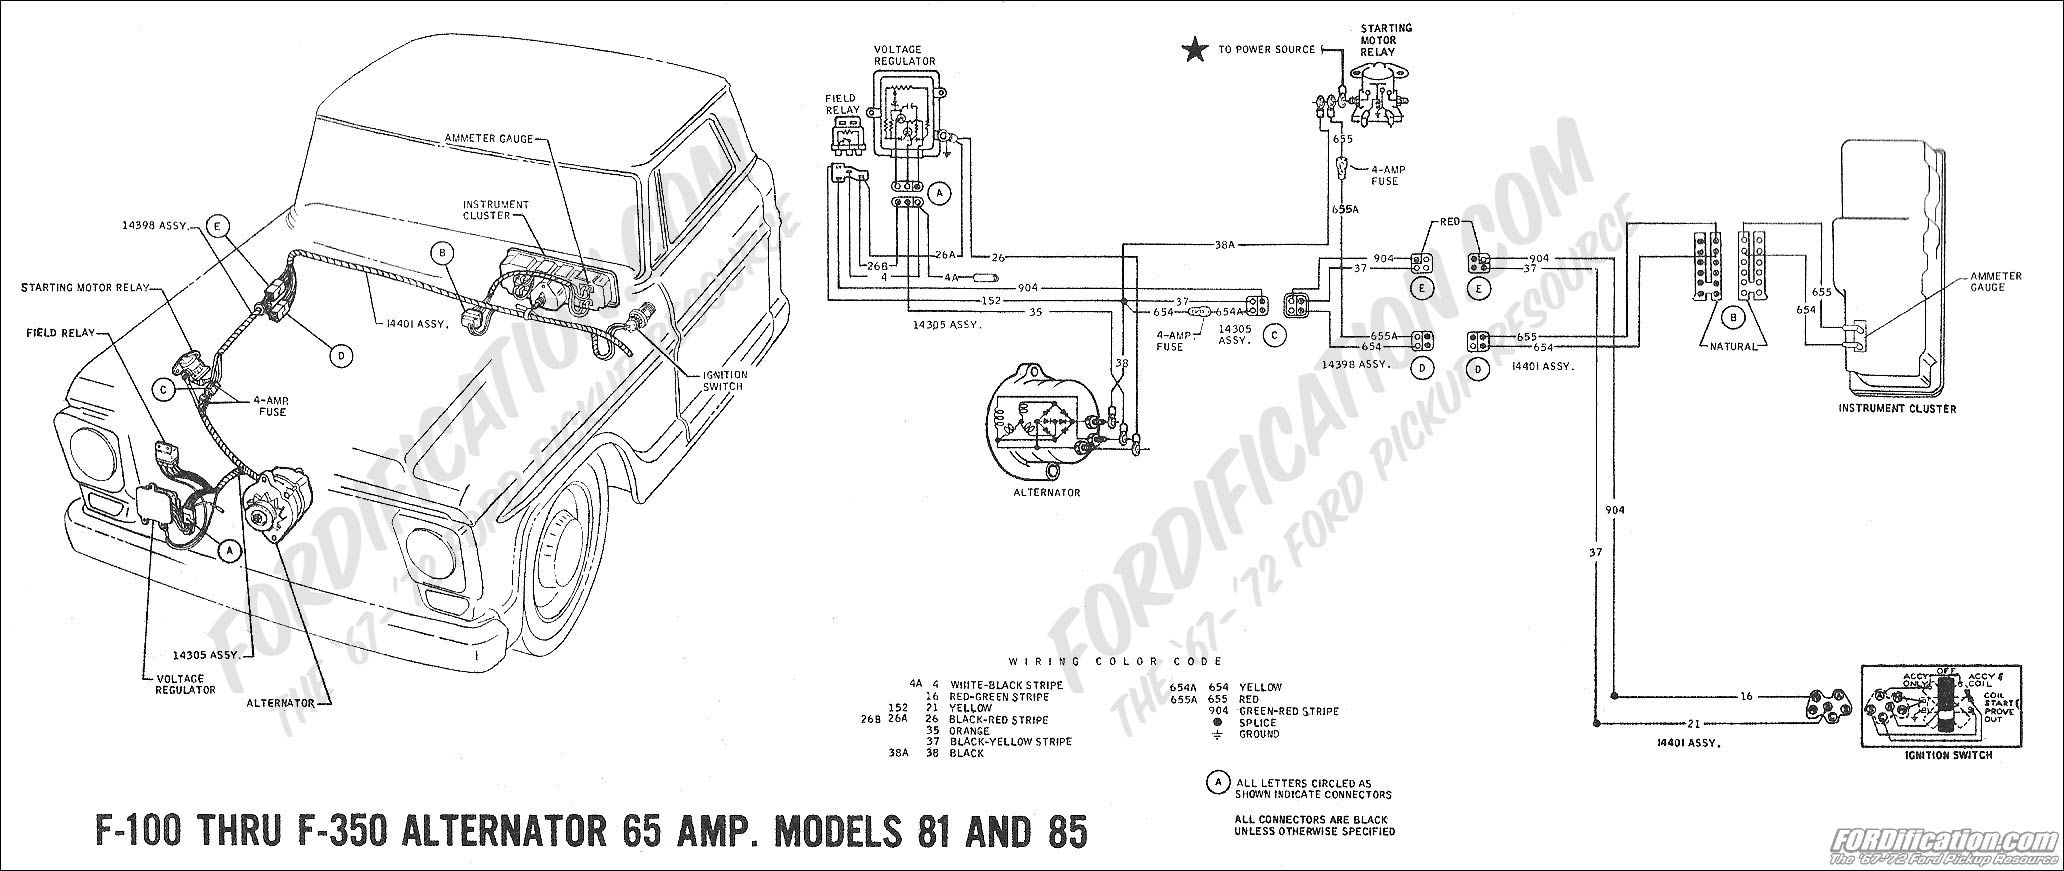 tags: #1987 ford f 250 wiring diagram#2001 ford f350 wiring diagrams#1996 ford  truck wiring diagrams#1987 ford e 350 wiring diagram#1995 ford f 350sel